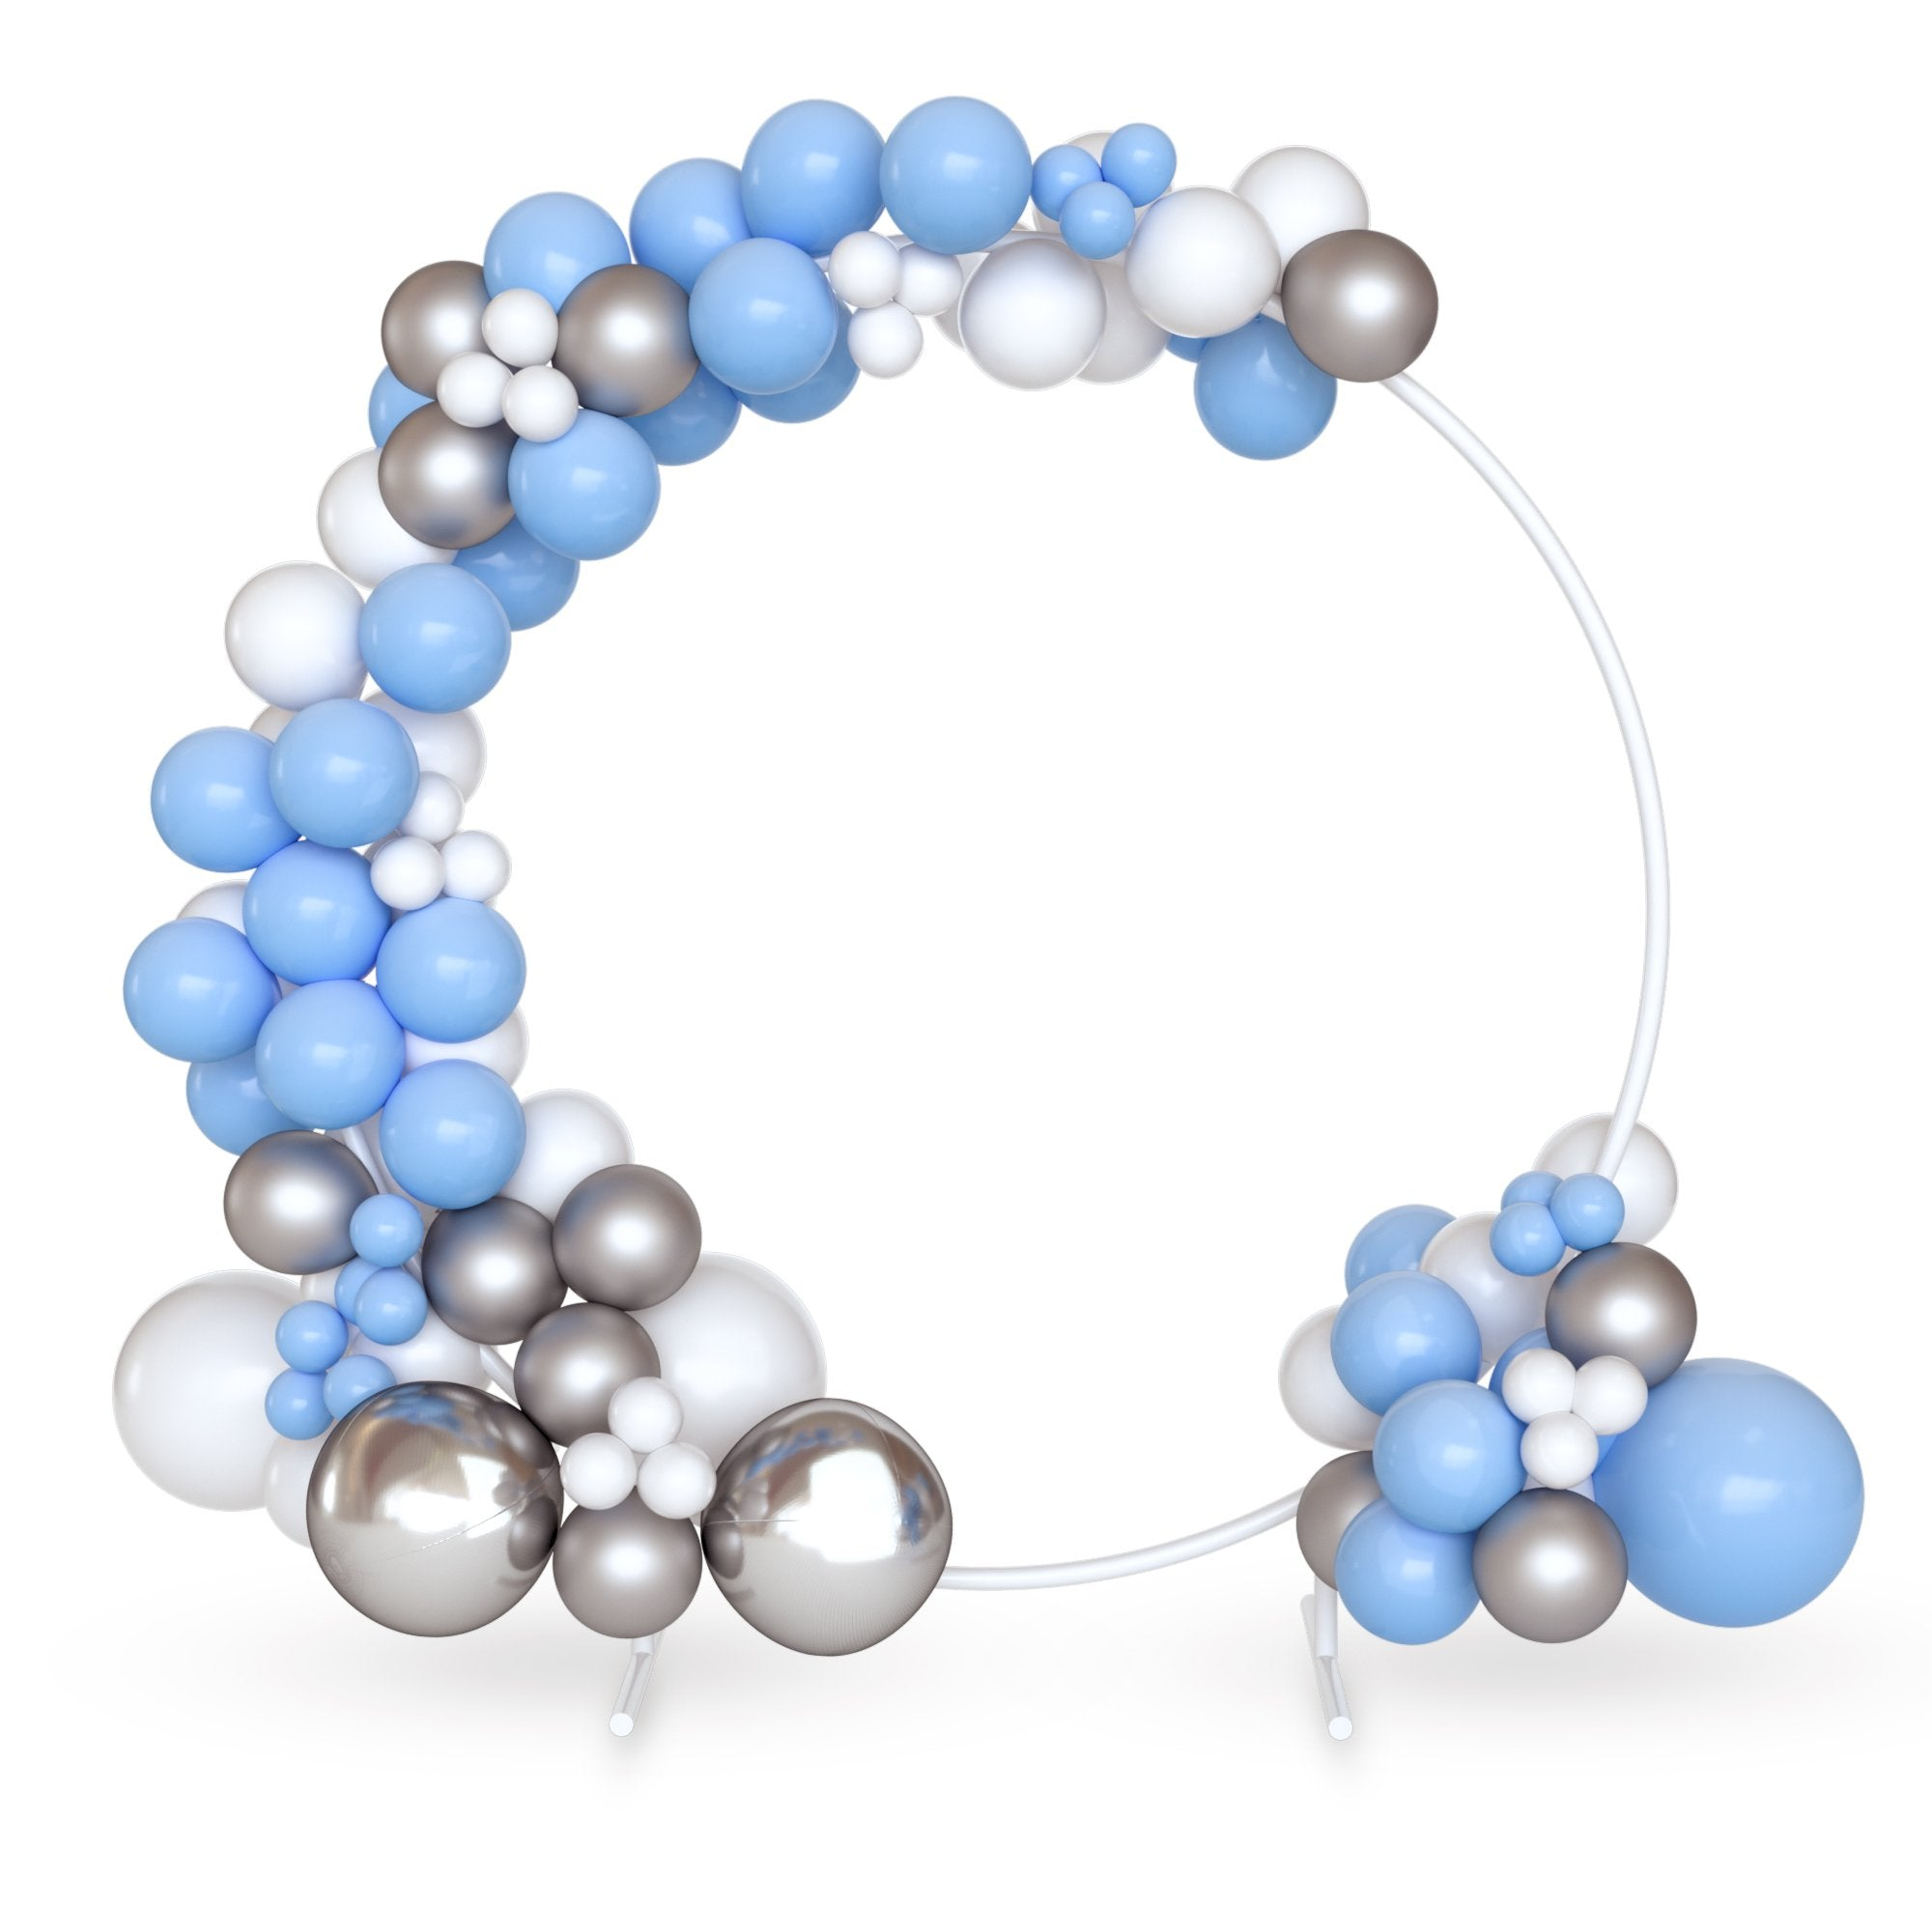 DIY 16 ft Balloon Arch Garland Kit | Blue, White & Silver | 120 Balloons | Birthday Parties, Baby Showers, Gender Reveals | TUR Party Supplies